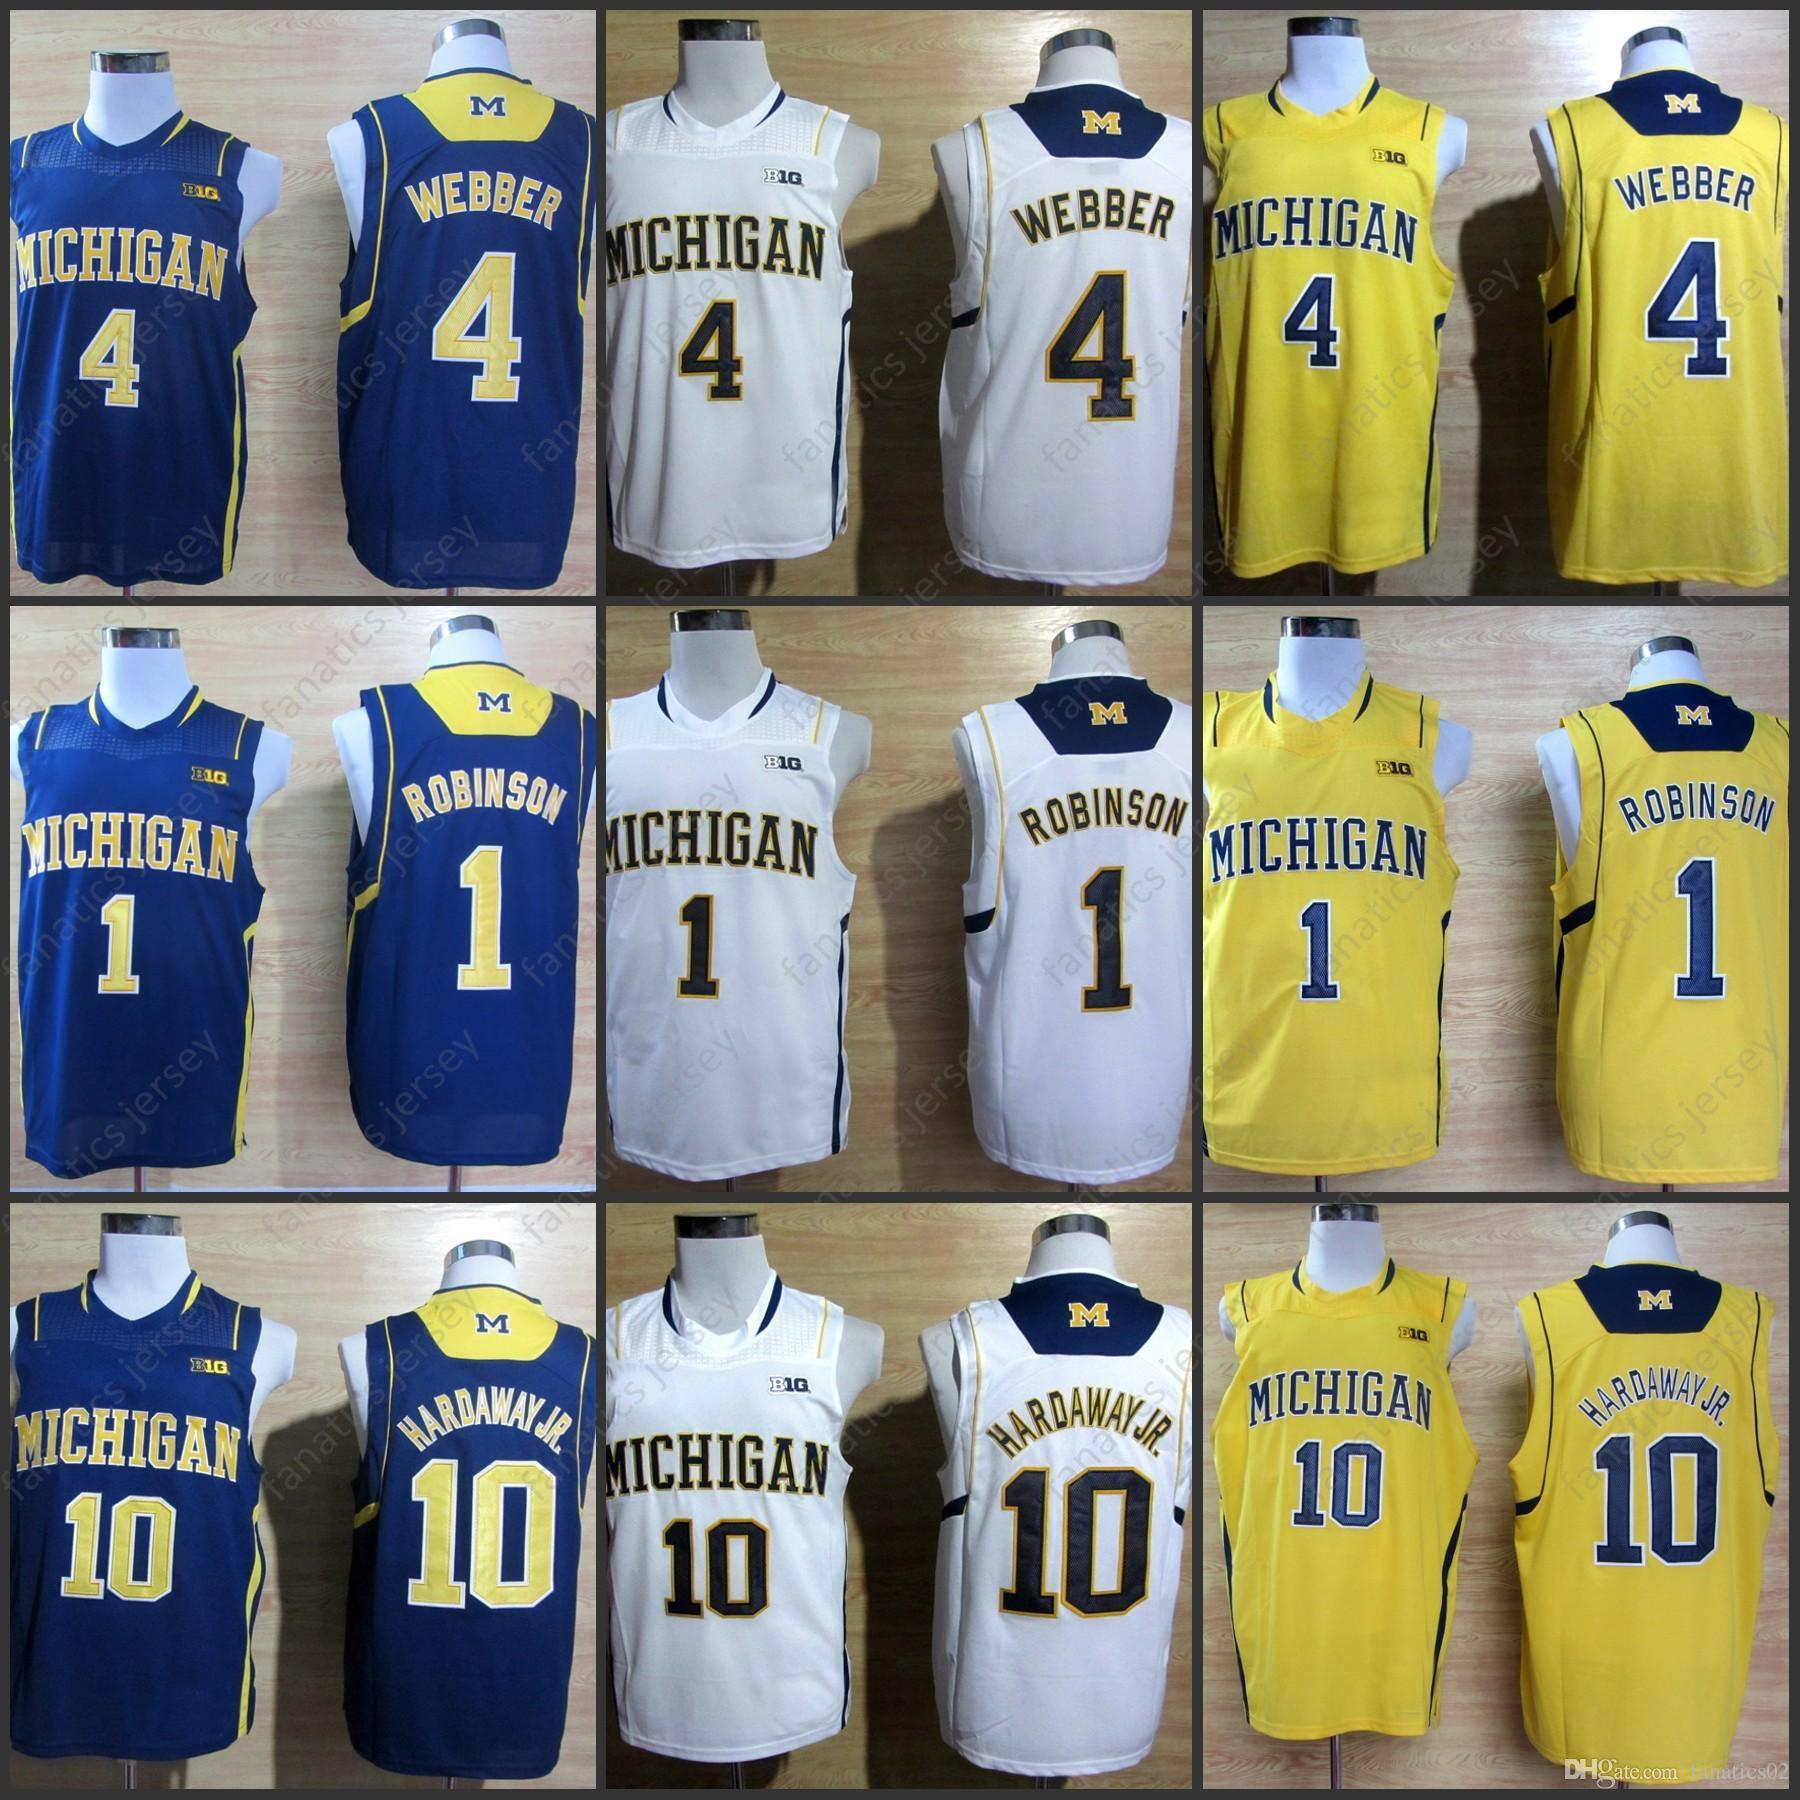 7d63af982 Michigan Wolverines Jerseys NCAA College Basketball 10 Tom Brady 4 Chirs  Webber 1 Glenn Robinson III 3 Trey Burke 2018 Big Discount Jersey Online  with ...